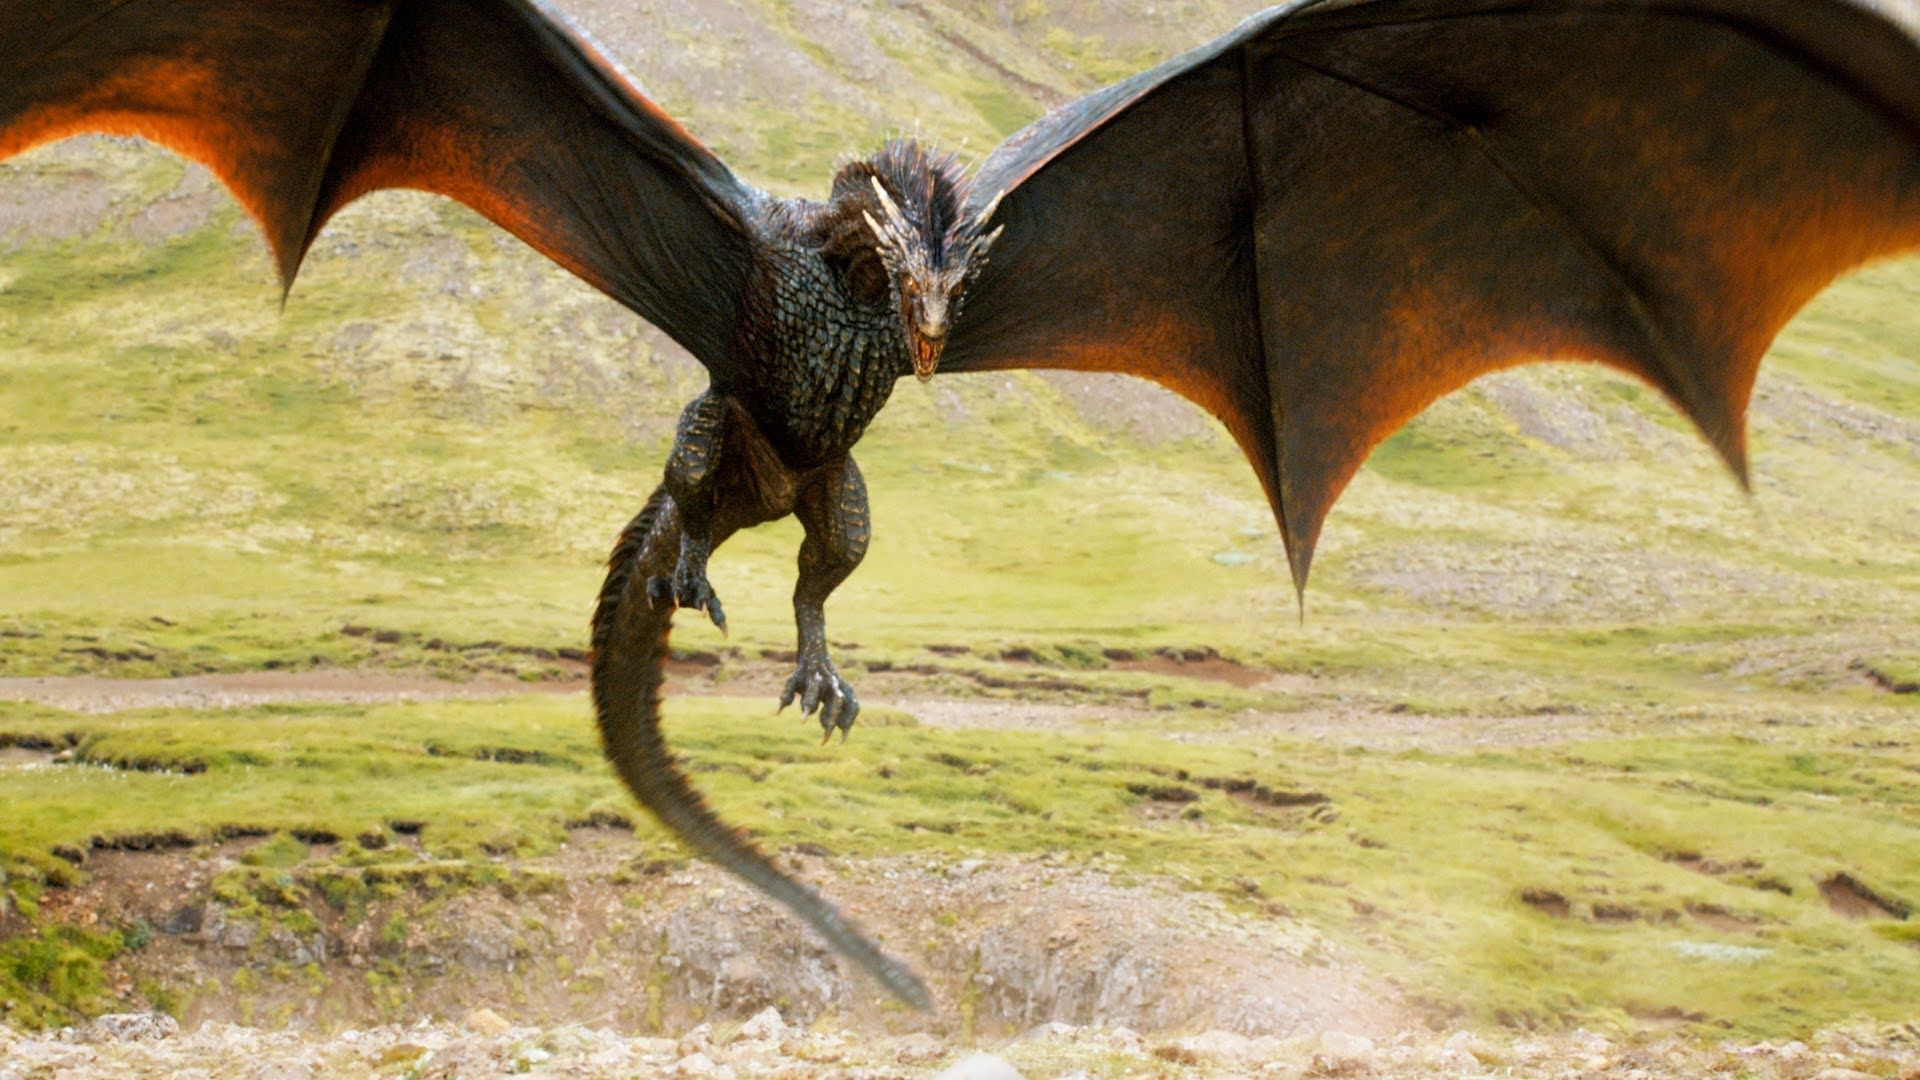 Game Of Thrones Dragon Wallpaper Game Of Thrones Dragons Game